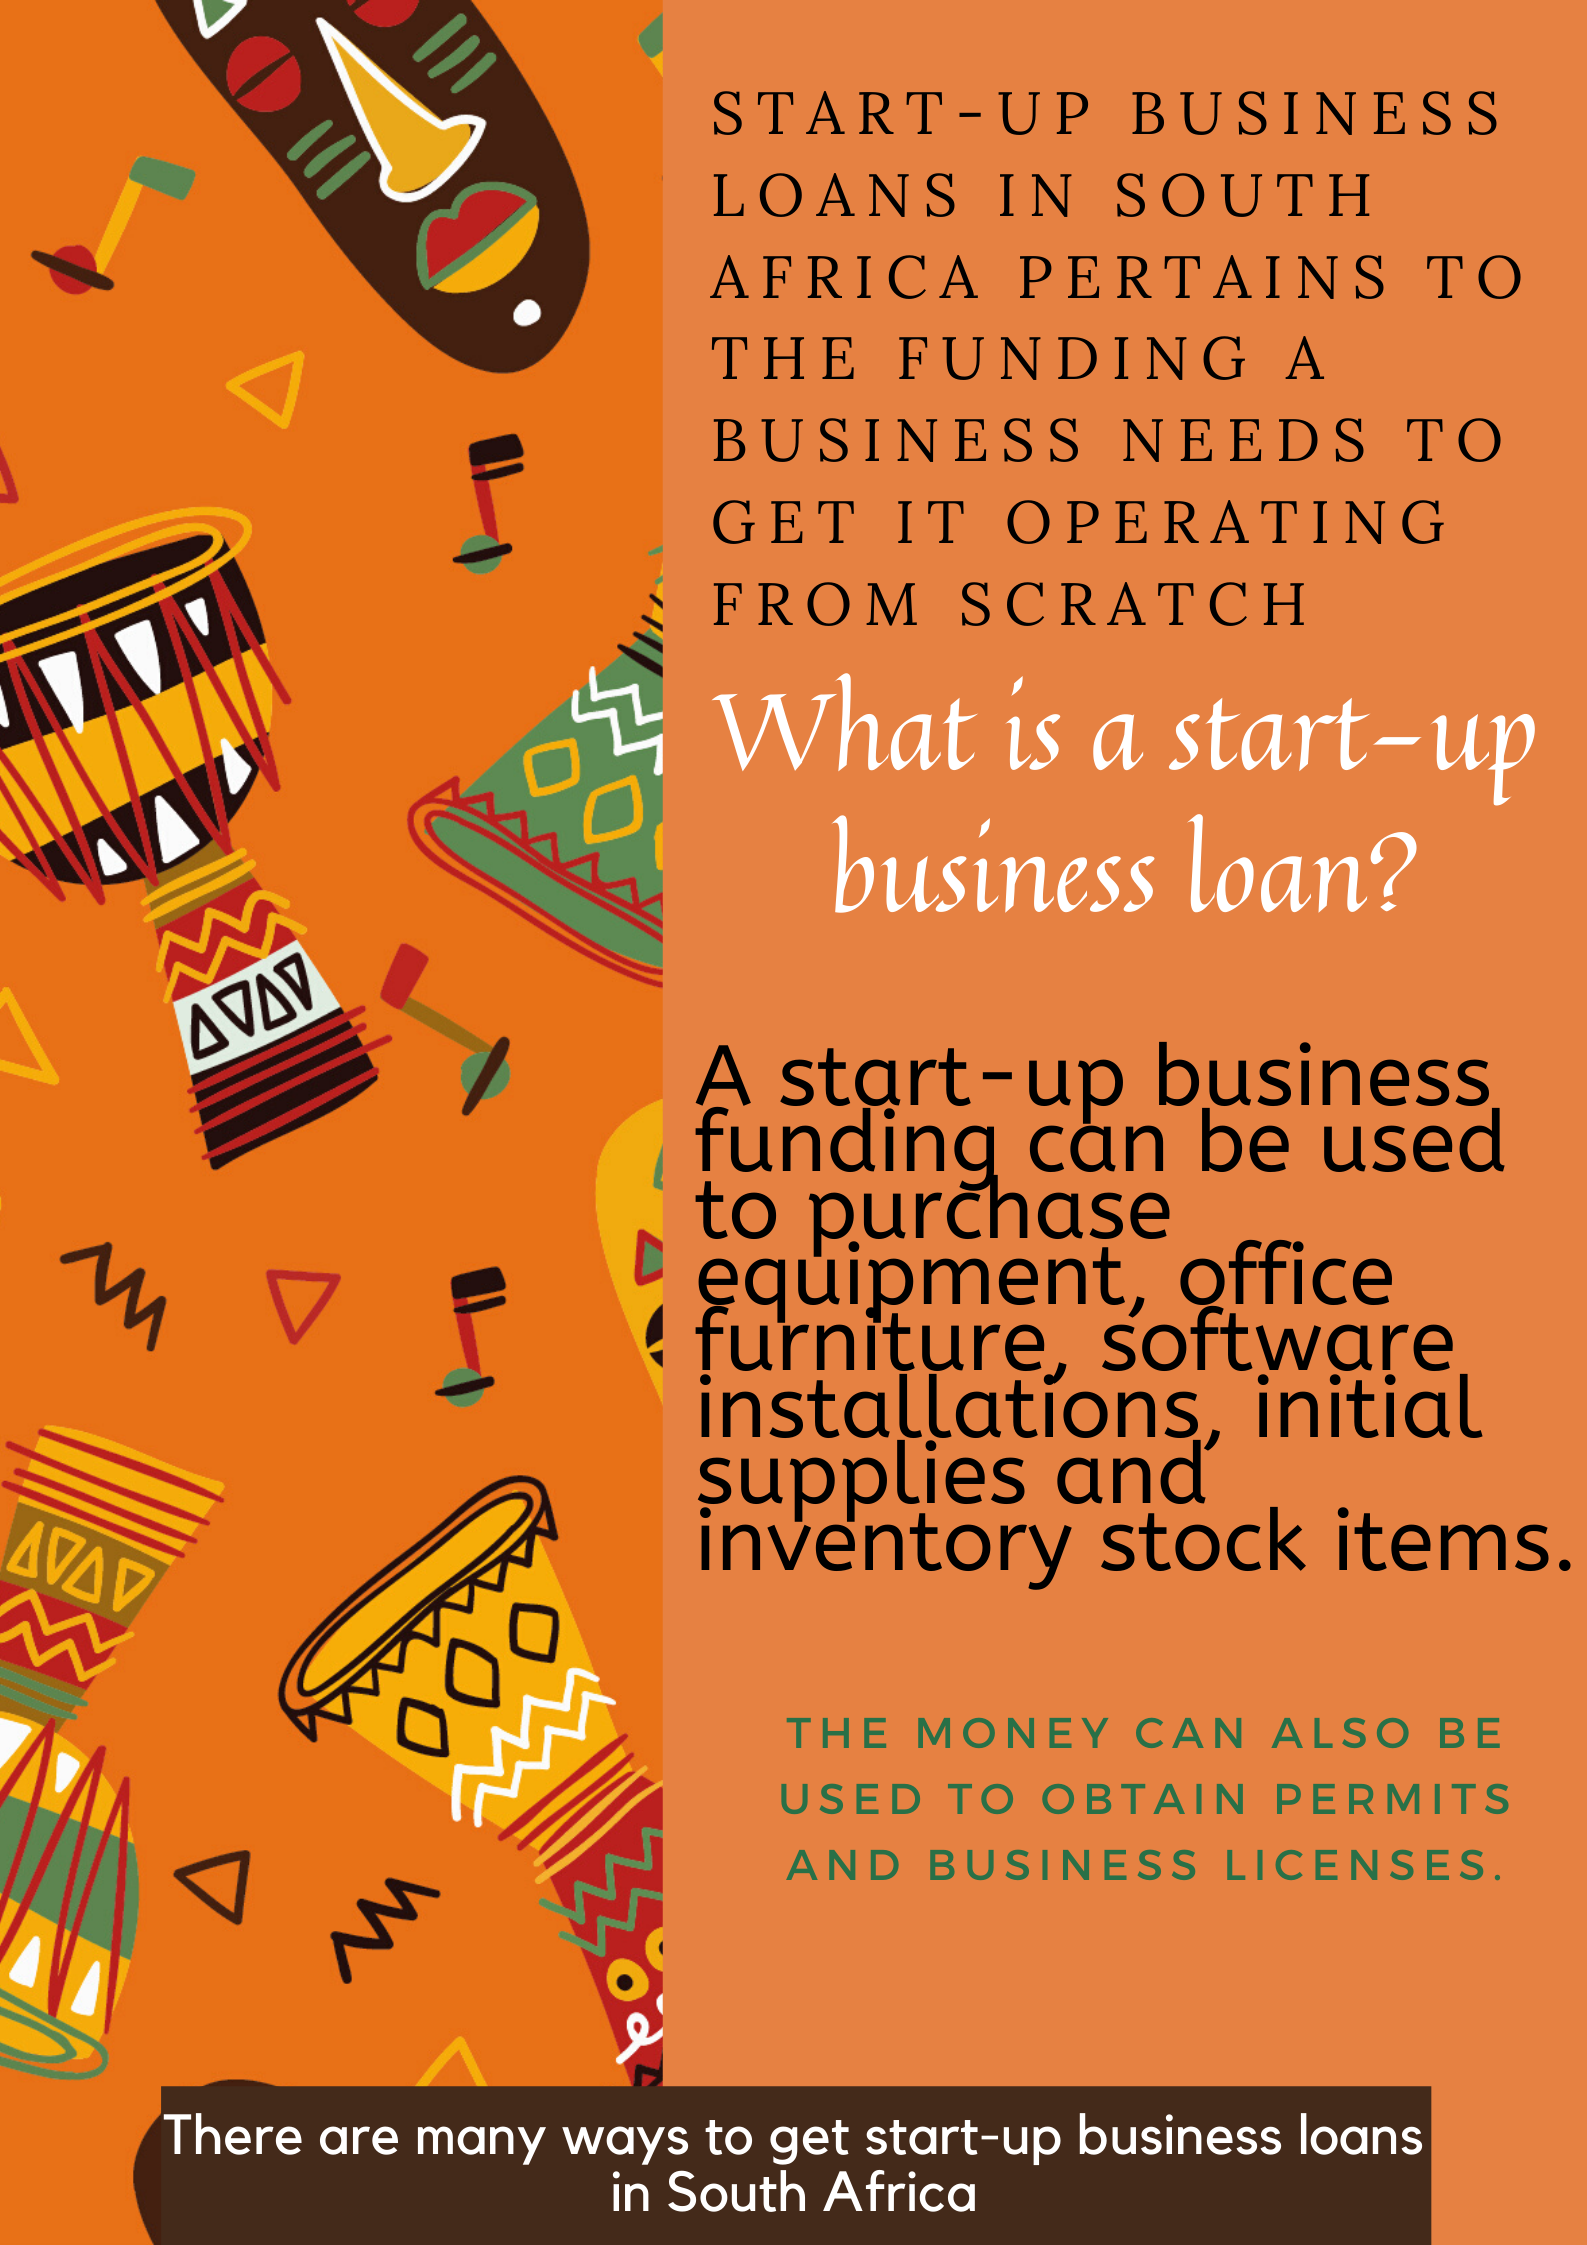 How To Get Start Up Business Loans In South Africa In 2020 Start Up Business Business Loans Start Up